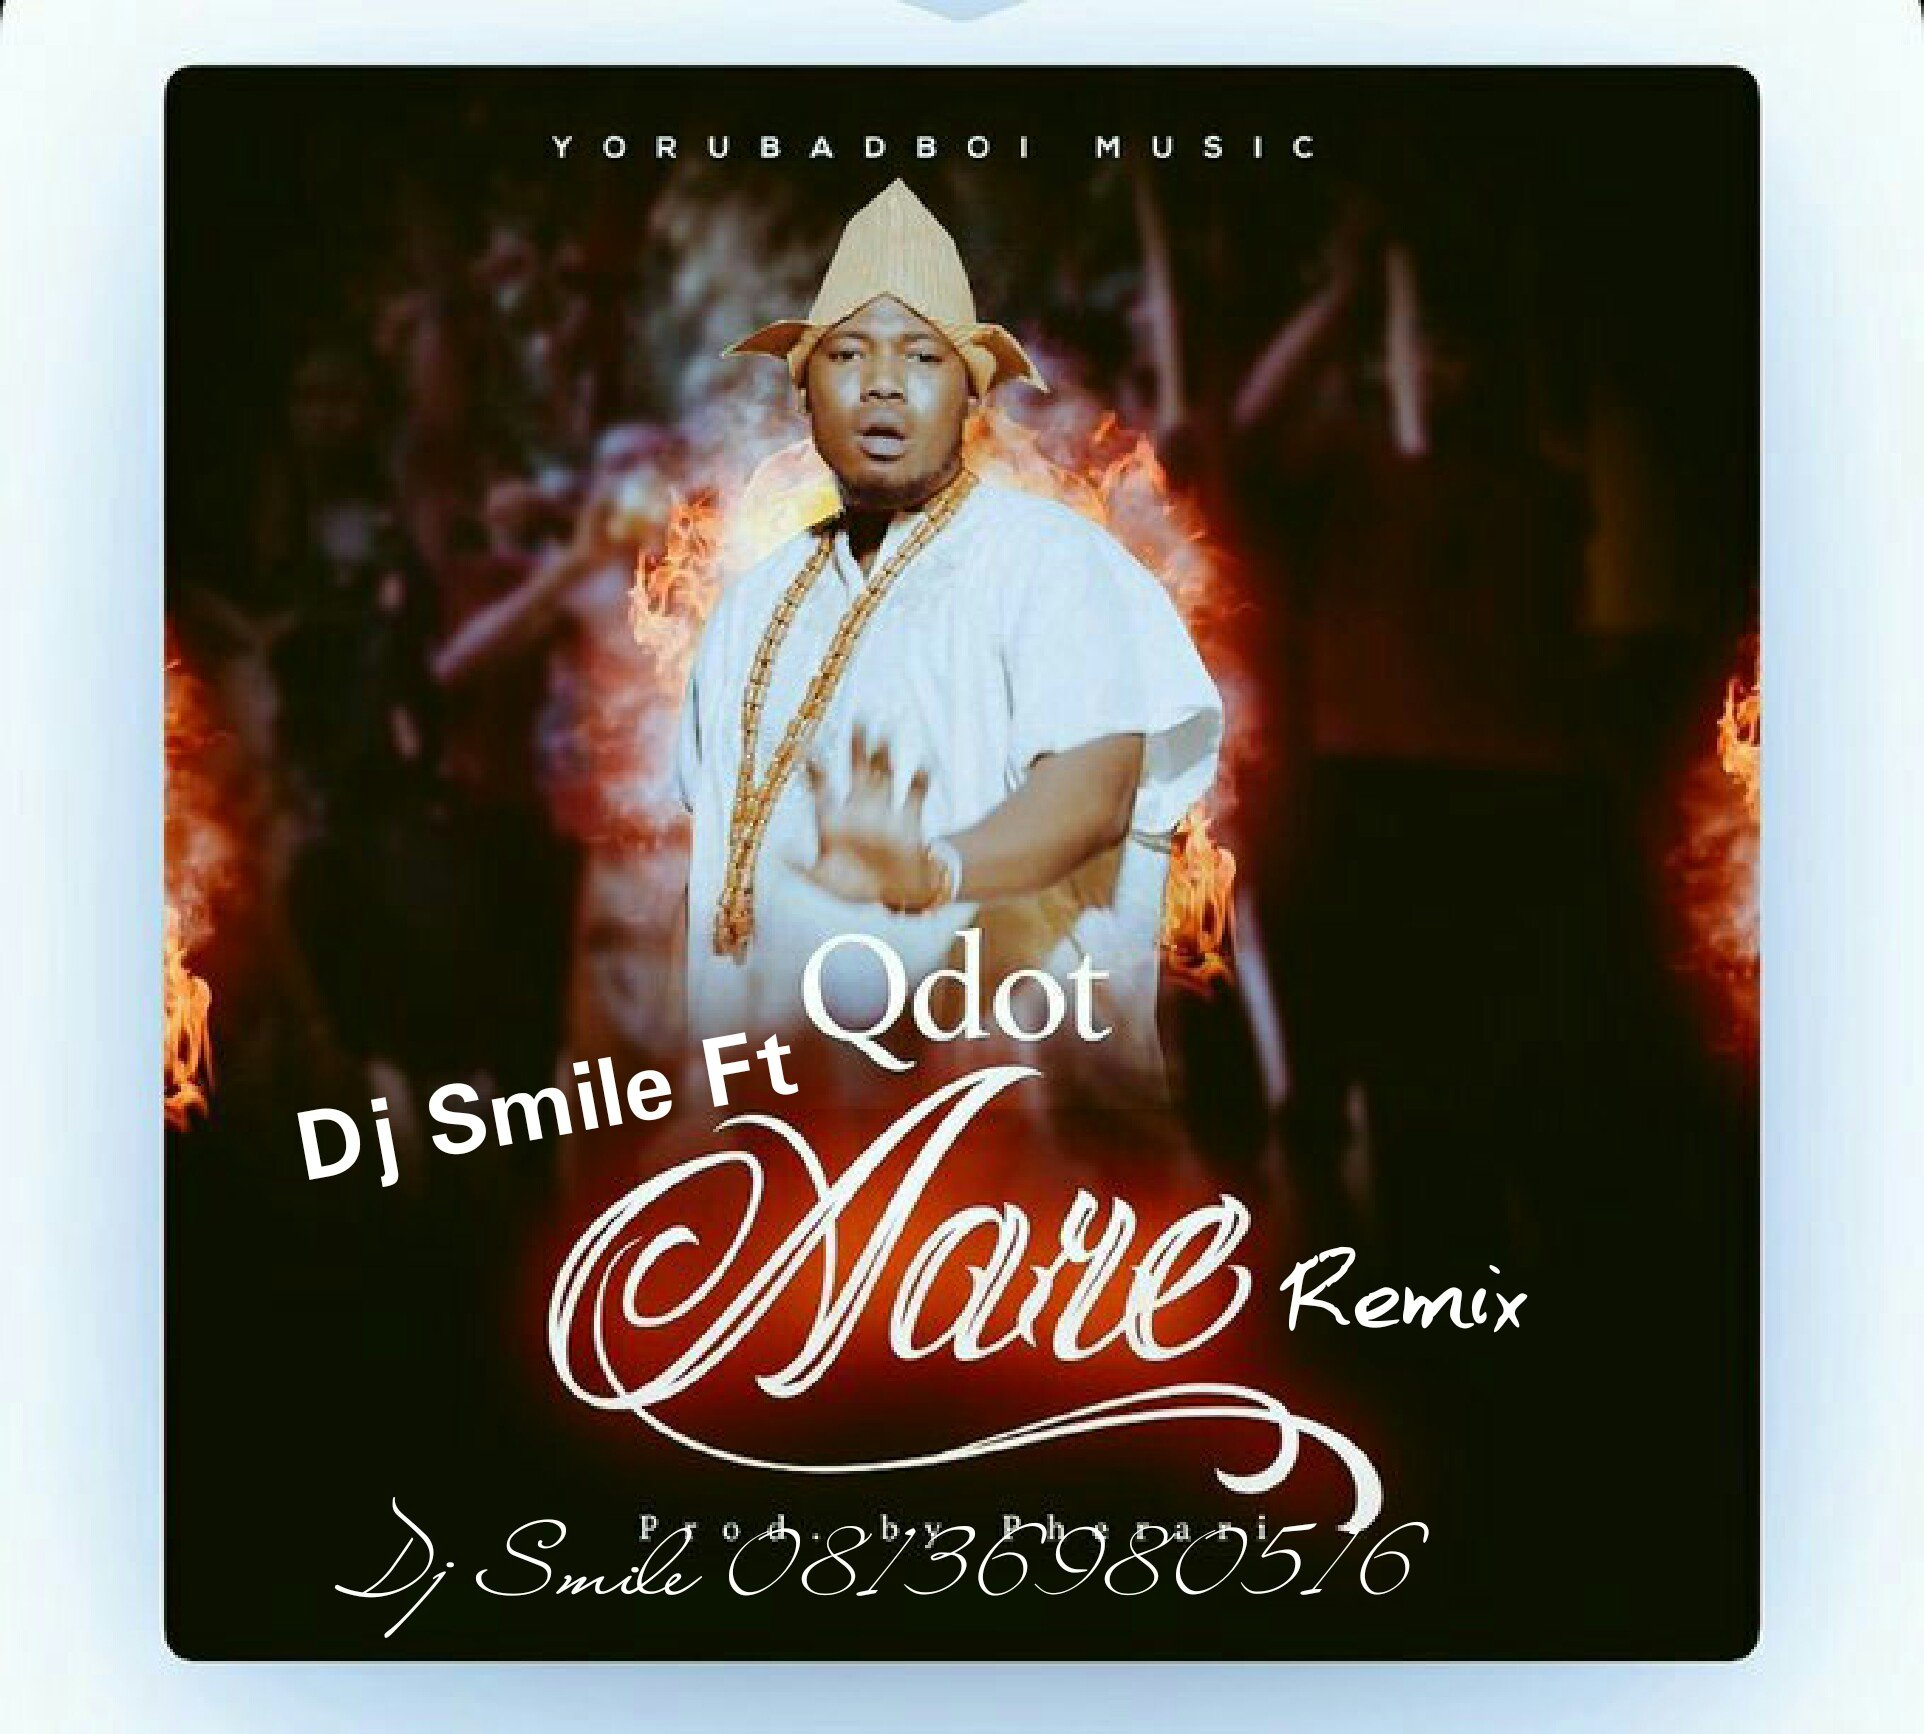 DJ SMILE ft QDOT AARE remix 08136980516 08087842780